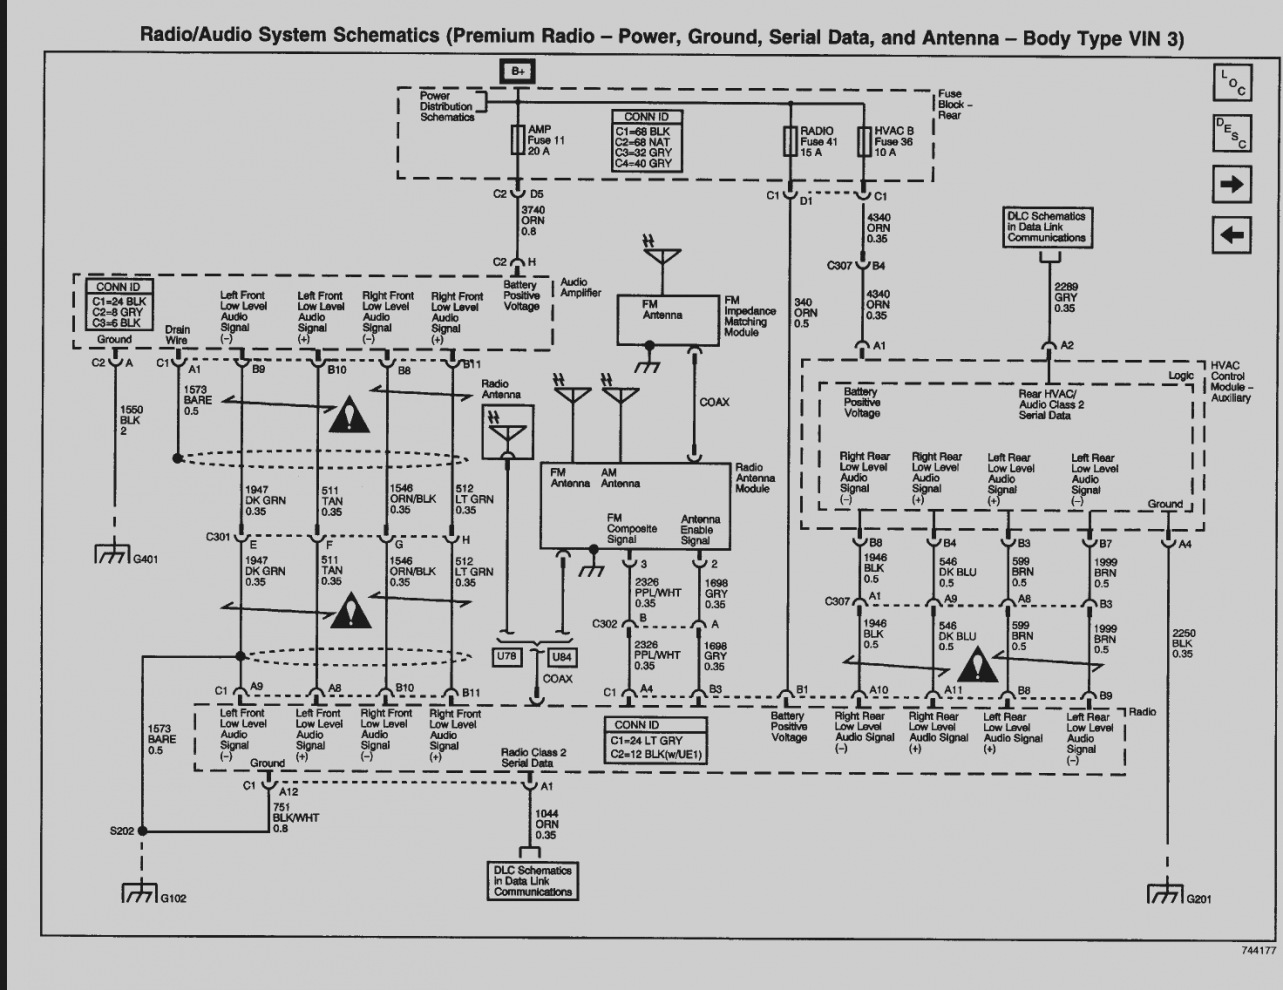 2004 Gmc Yukon Wiring Diagram | Wiring Diagram Gmc Yukon Trailer Wiring Harness on